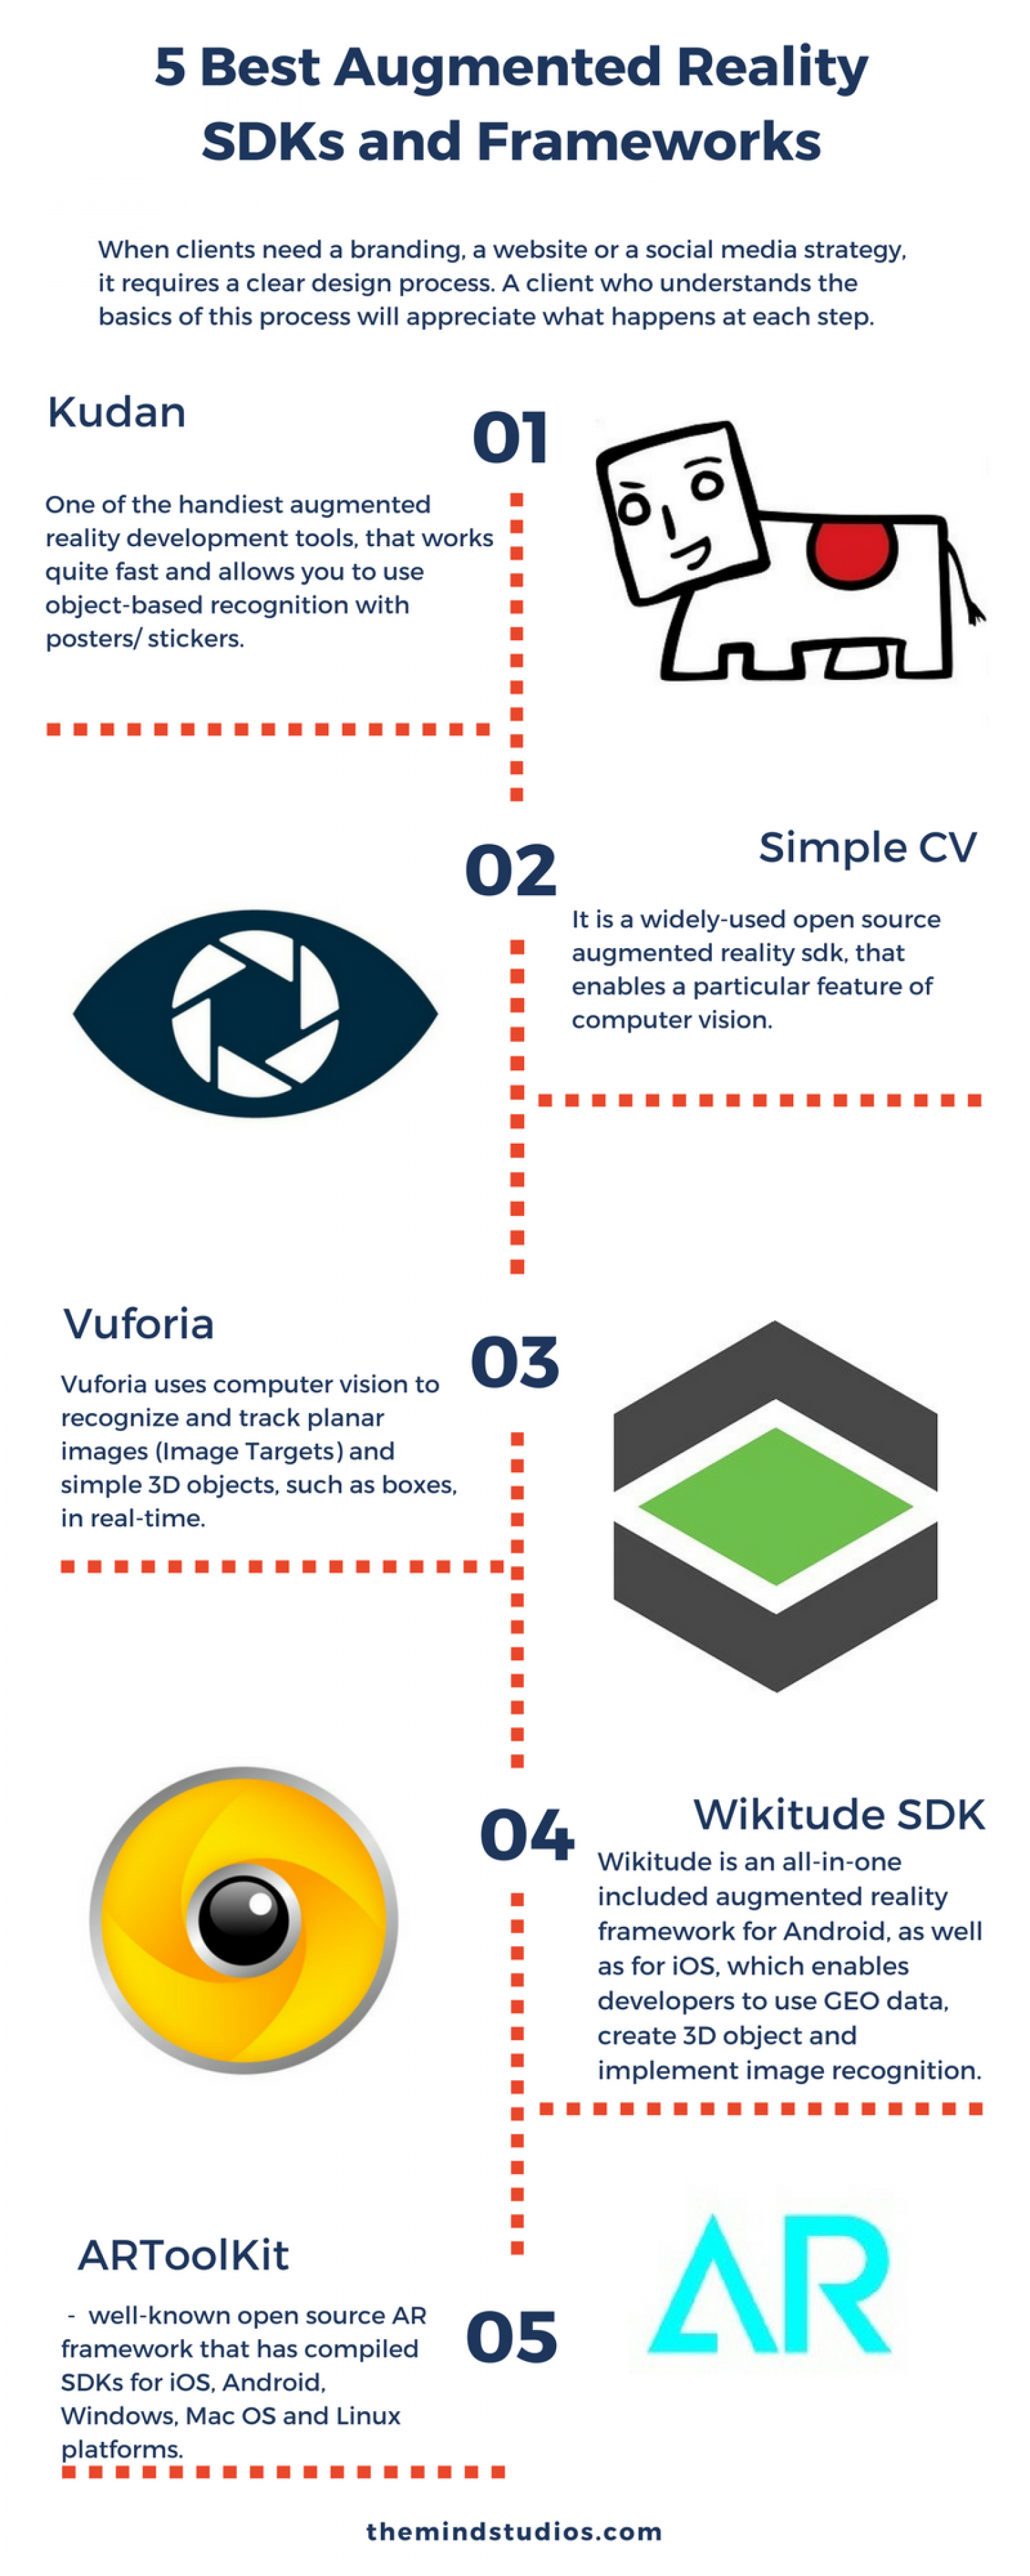 5 Best Augmented Reality SDKs and Frameworks Infographic